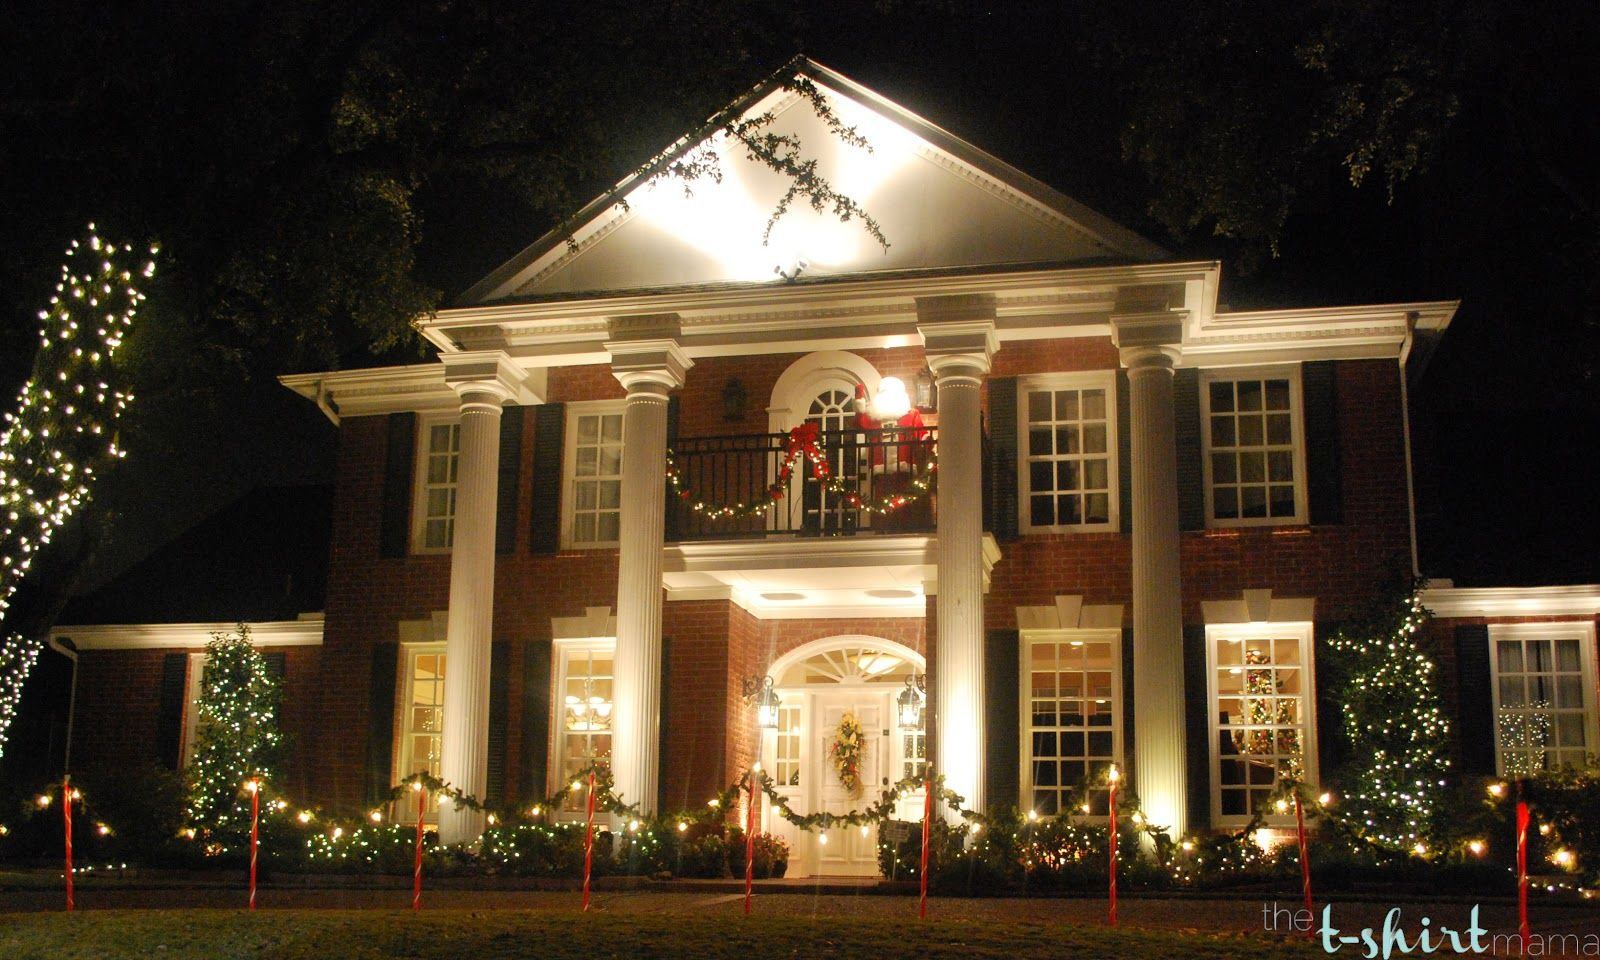 deerfield in plano texas the place to go for christmas lights via www - Plano Christmas Lights